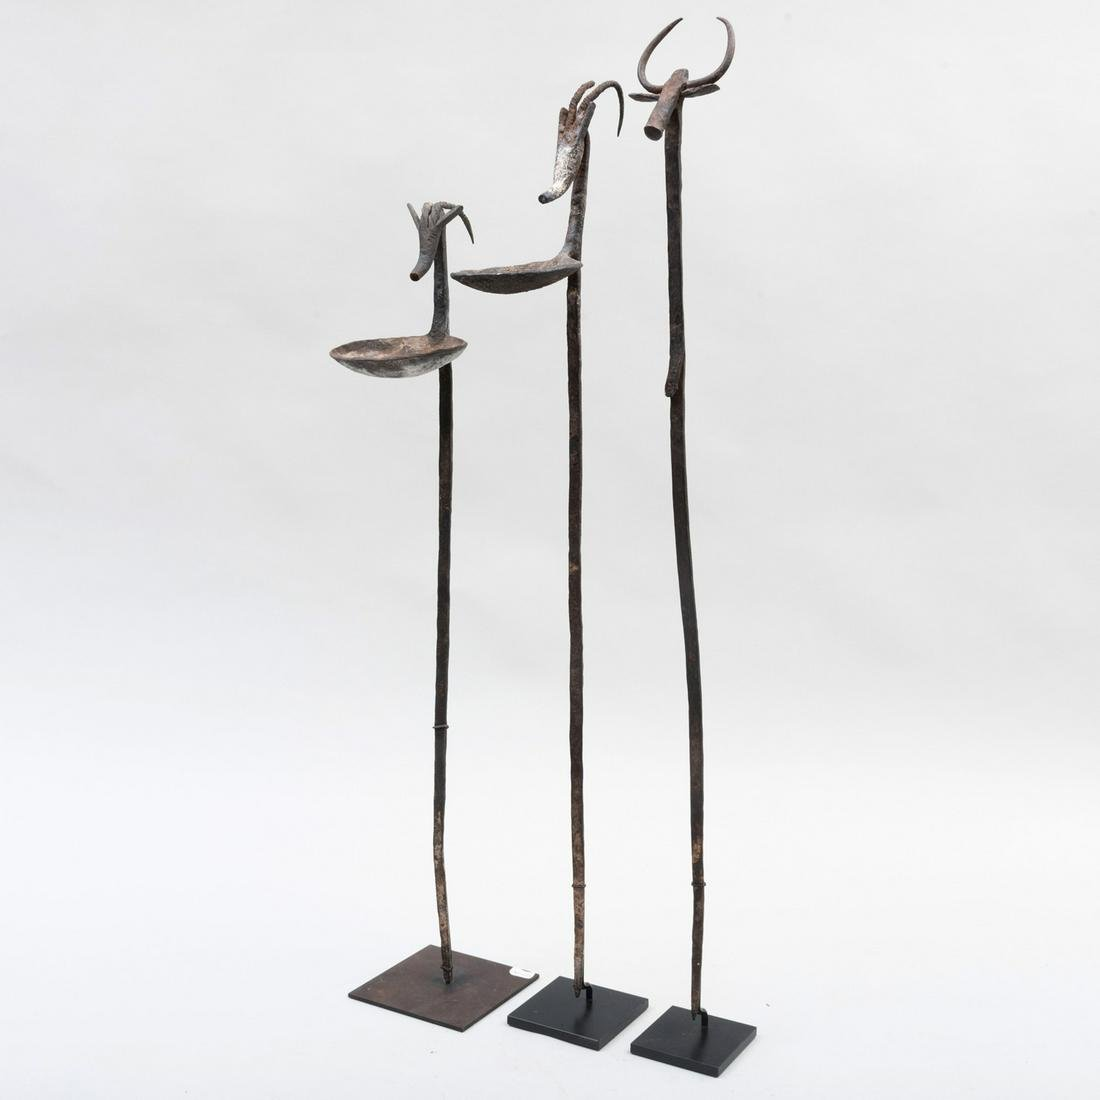 Two Bamana Iron Ceremonial Oil Lamps with a Bamana Iron